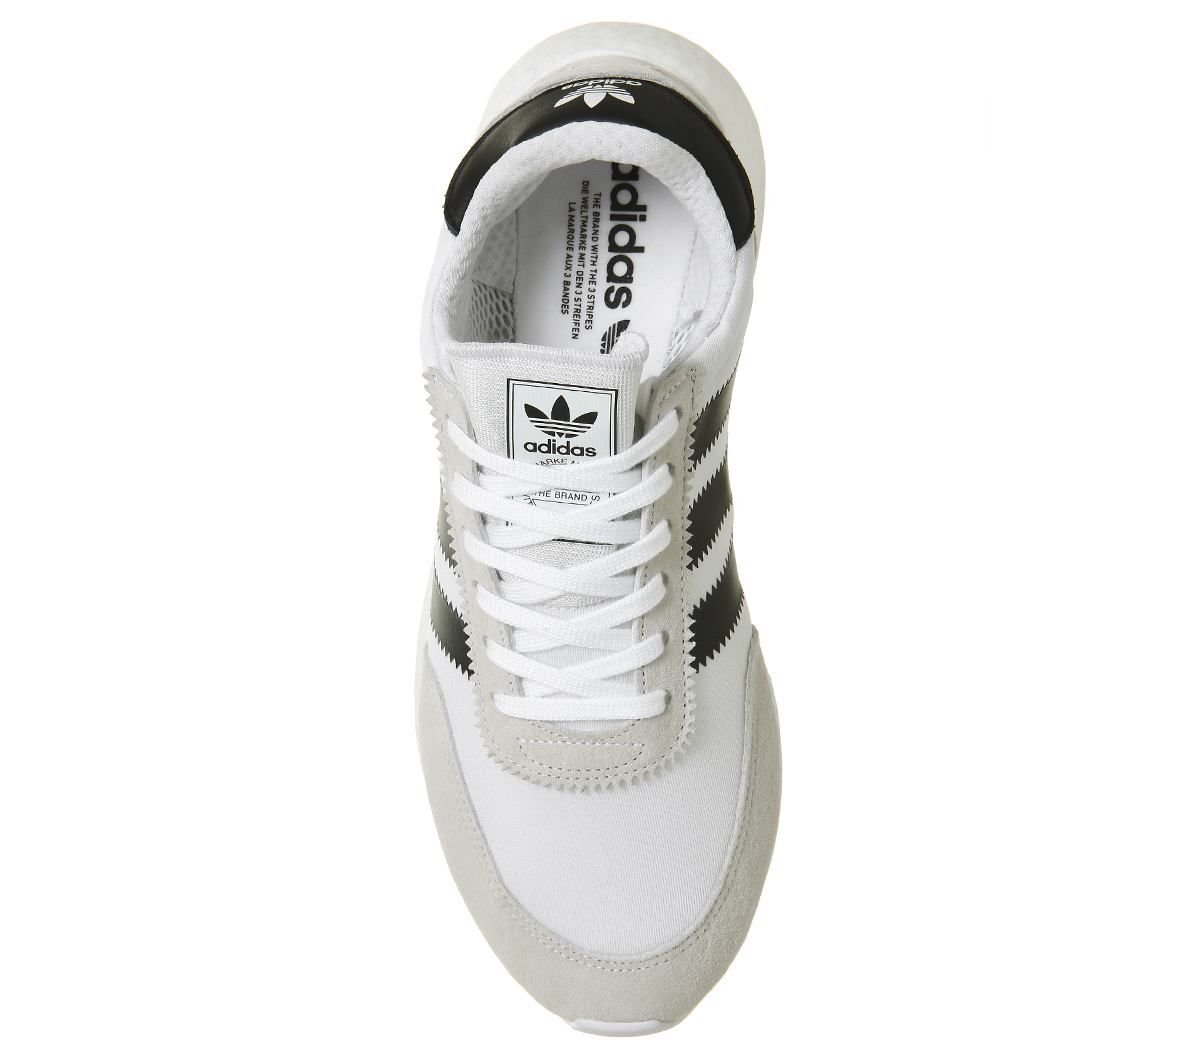 20005a8924b Mens Adidas I-5923 Trainers WHITE CORE BLACK COPPER Trainers Shoes ...